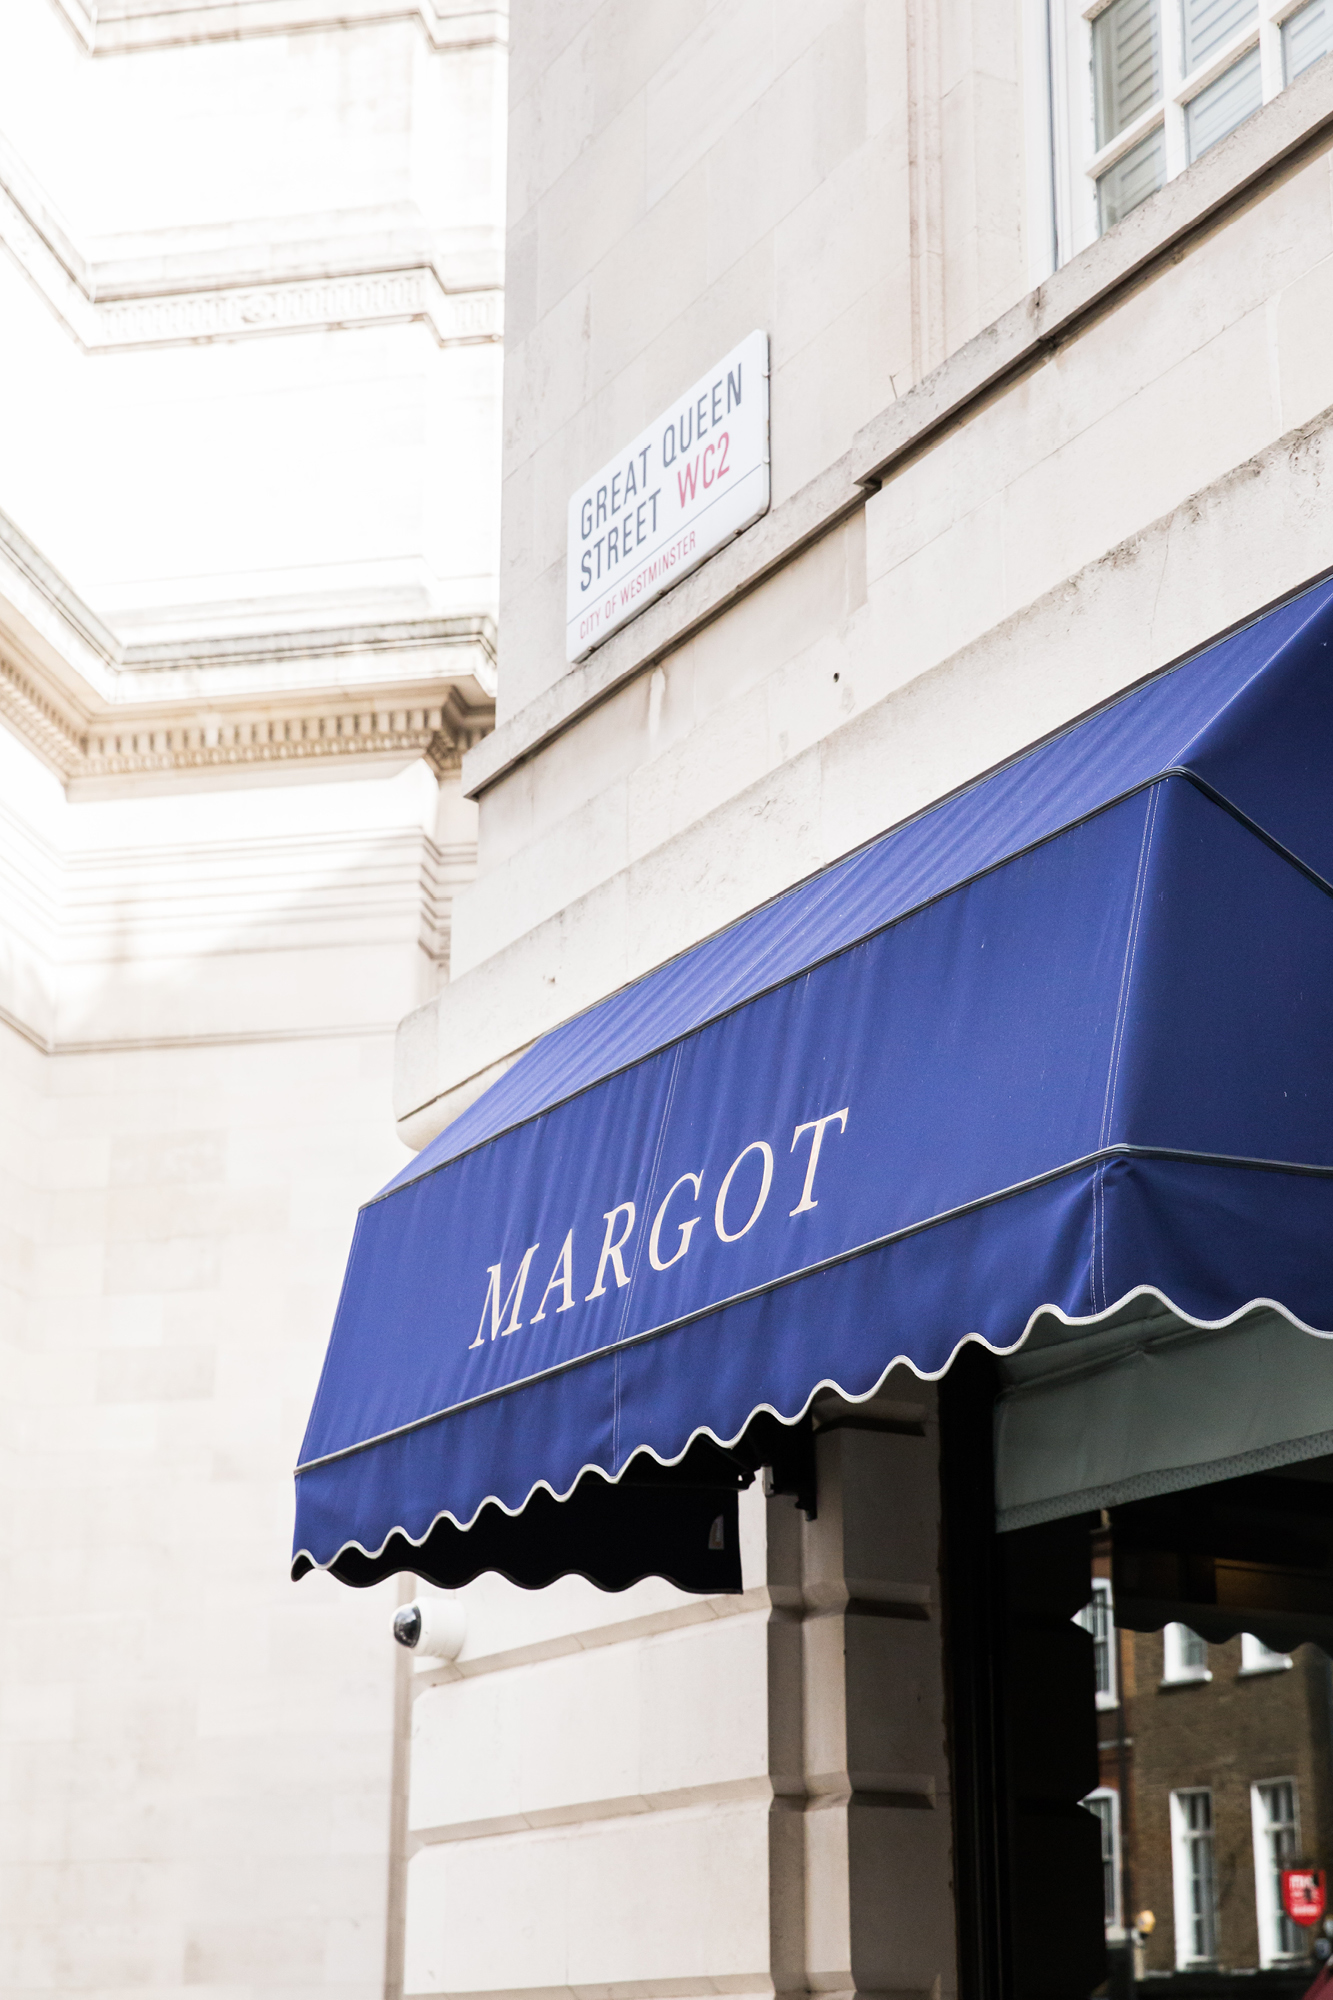 Margot restaurant in Covent Garden